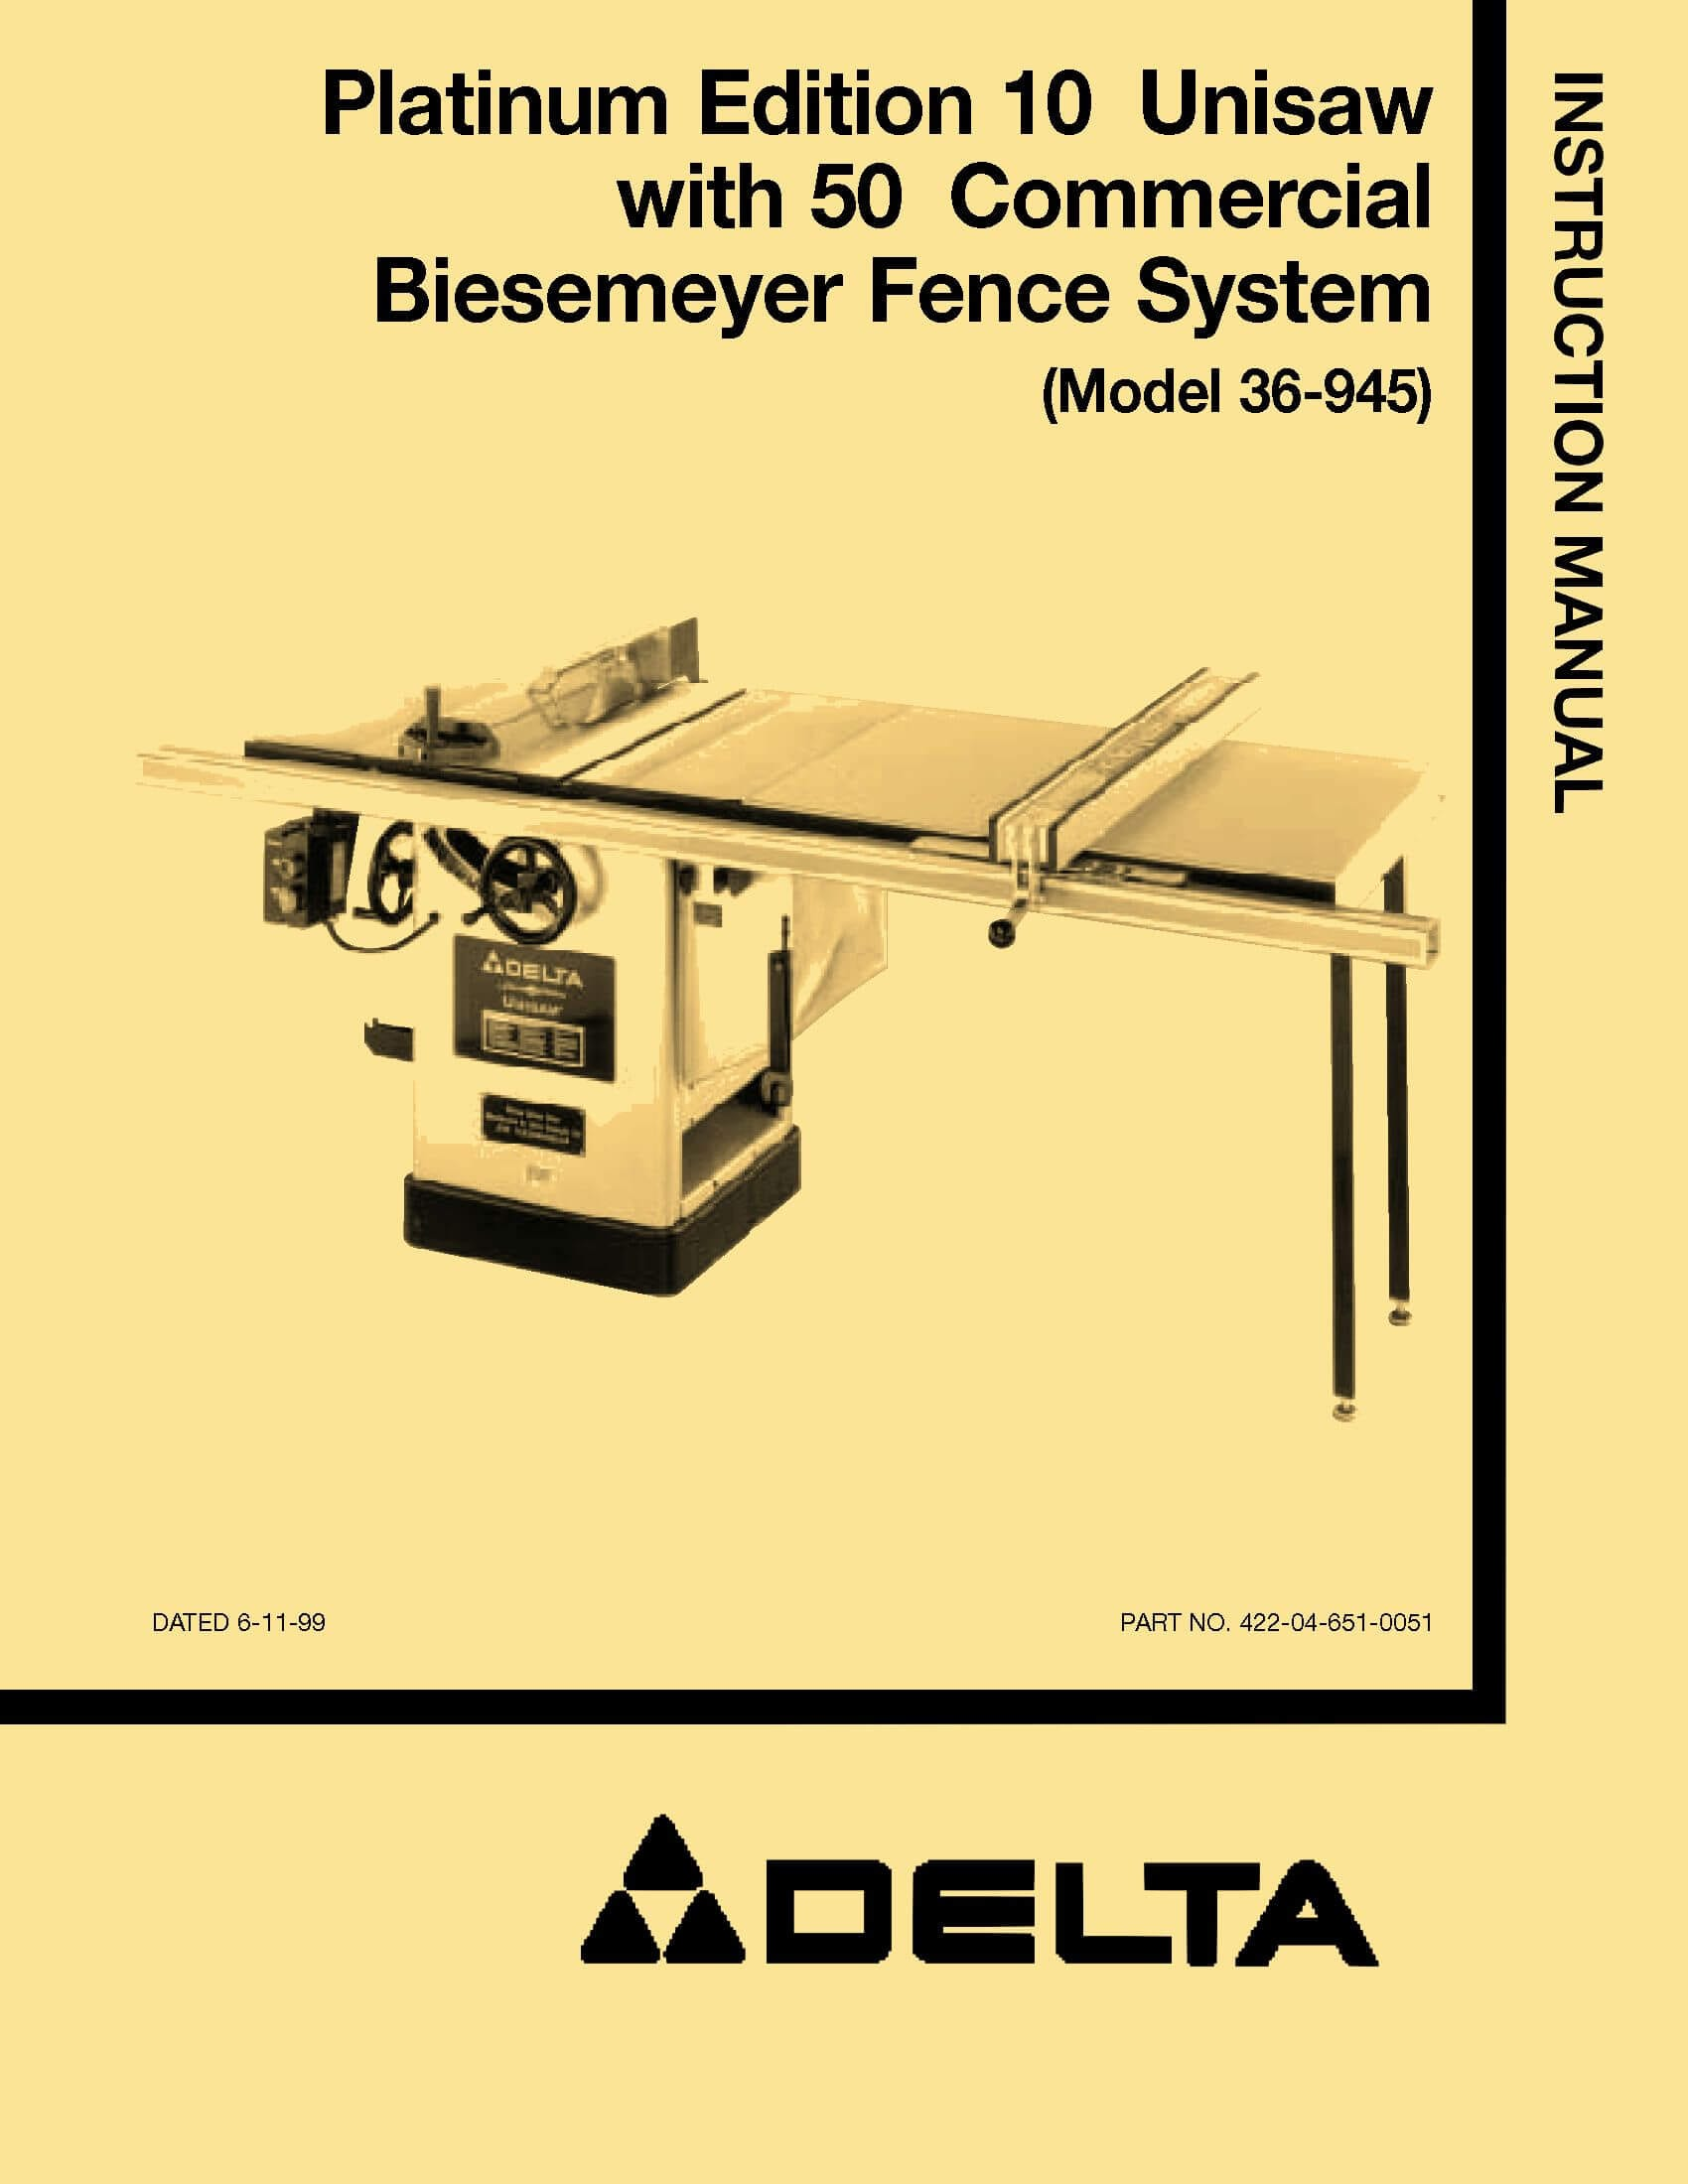 Table Saw Wiring Manual Real Diagram Delta On Off Switch 36 945 10 Quot Unisaw Instructions Parts Craftsman